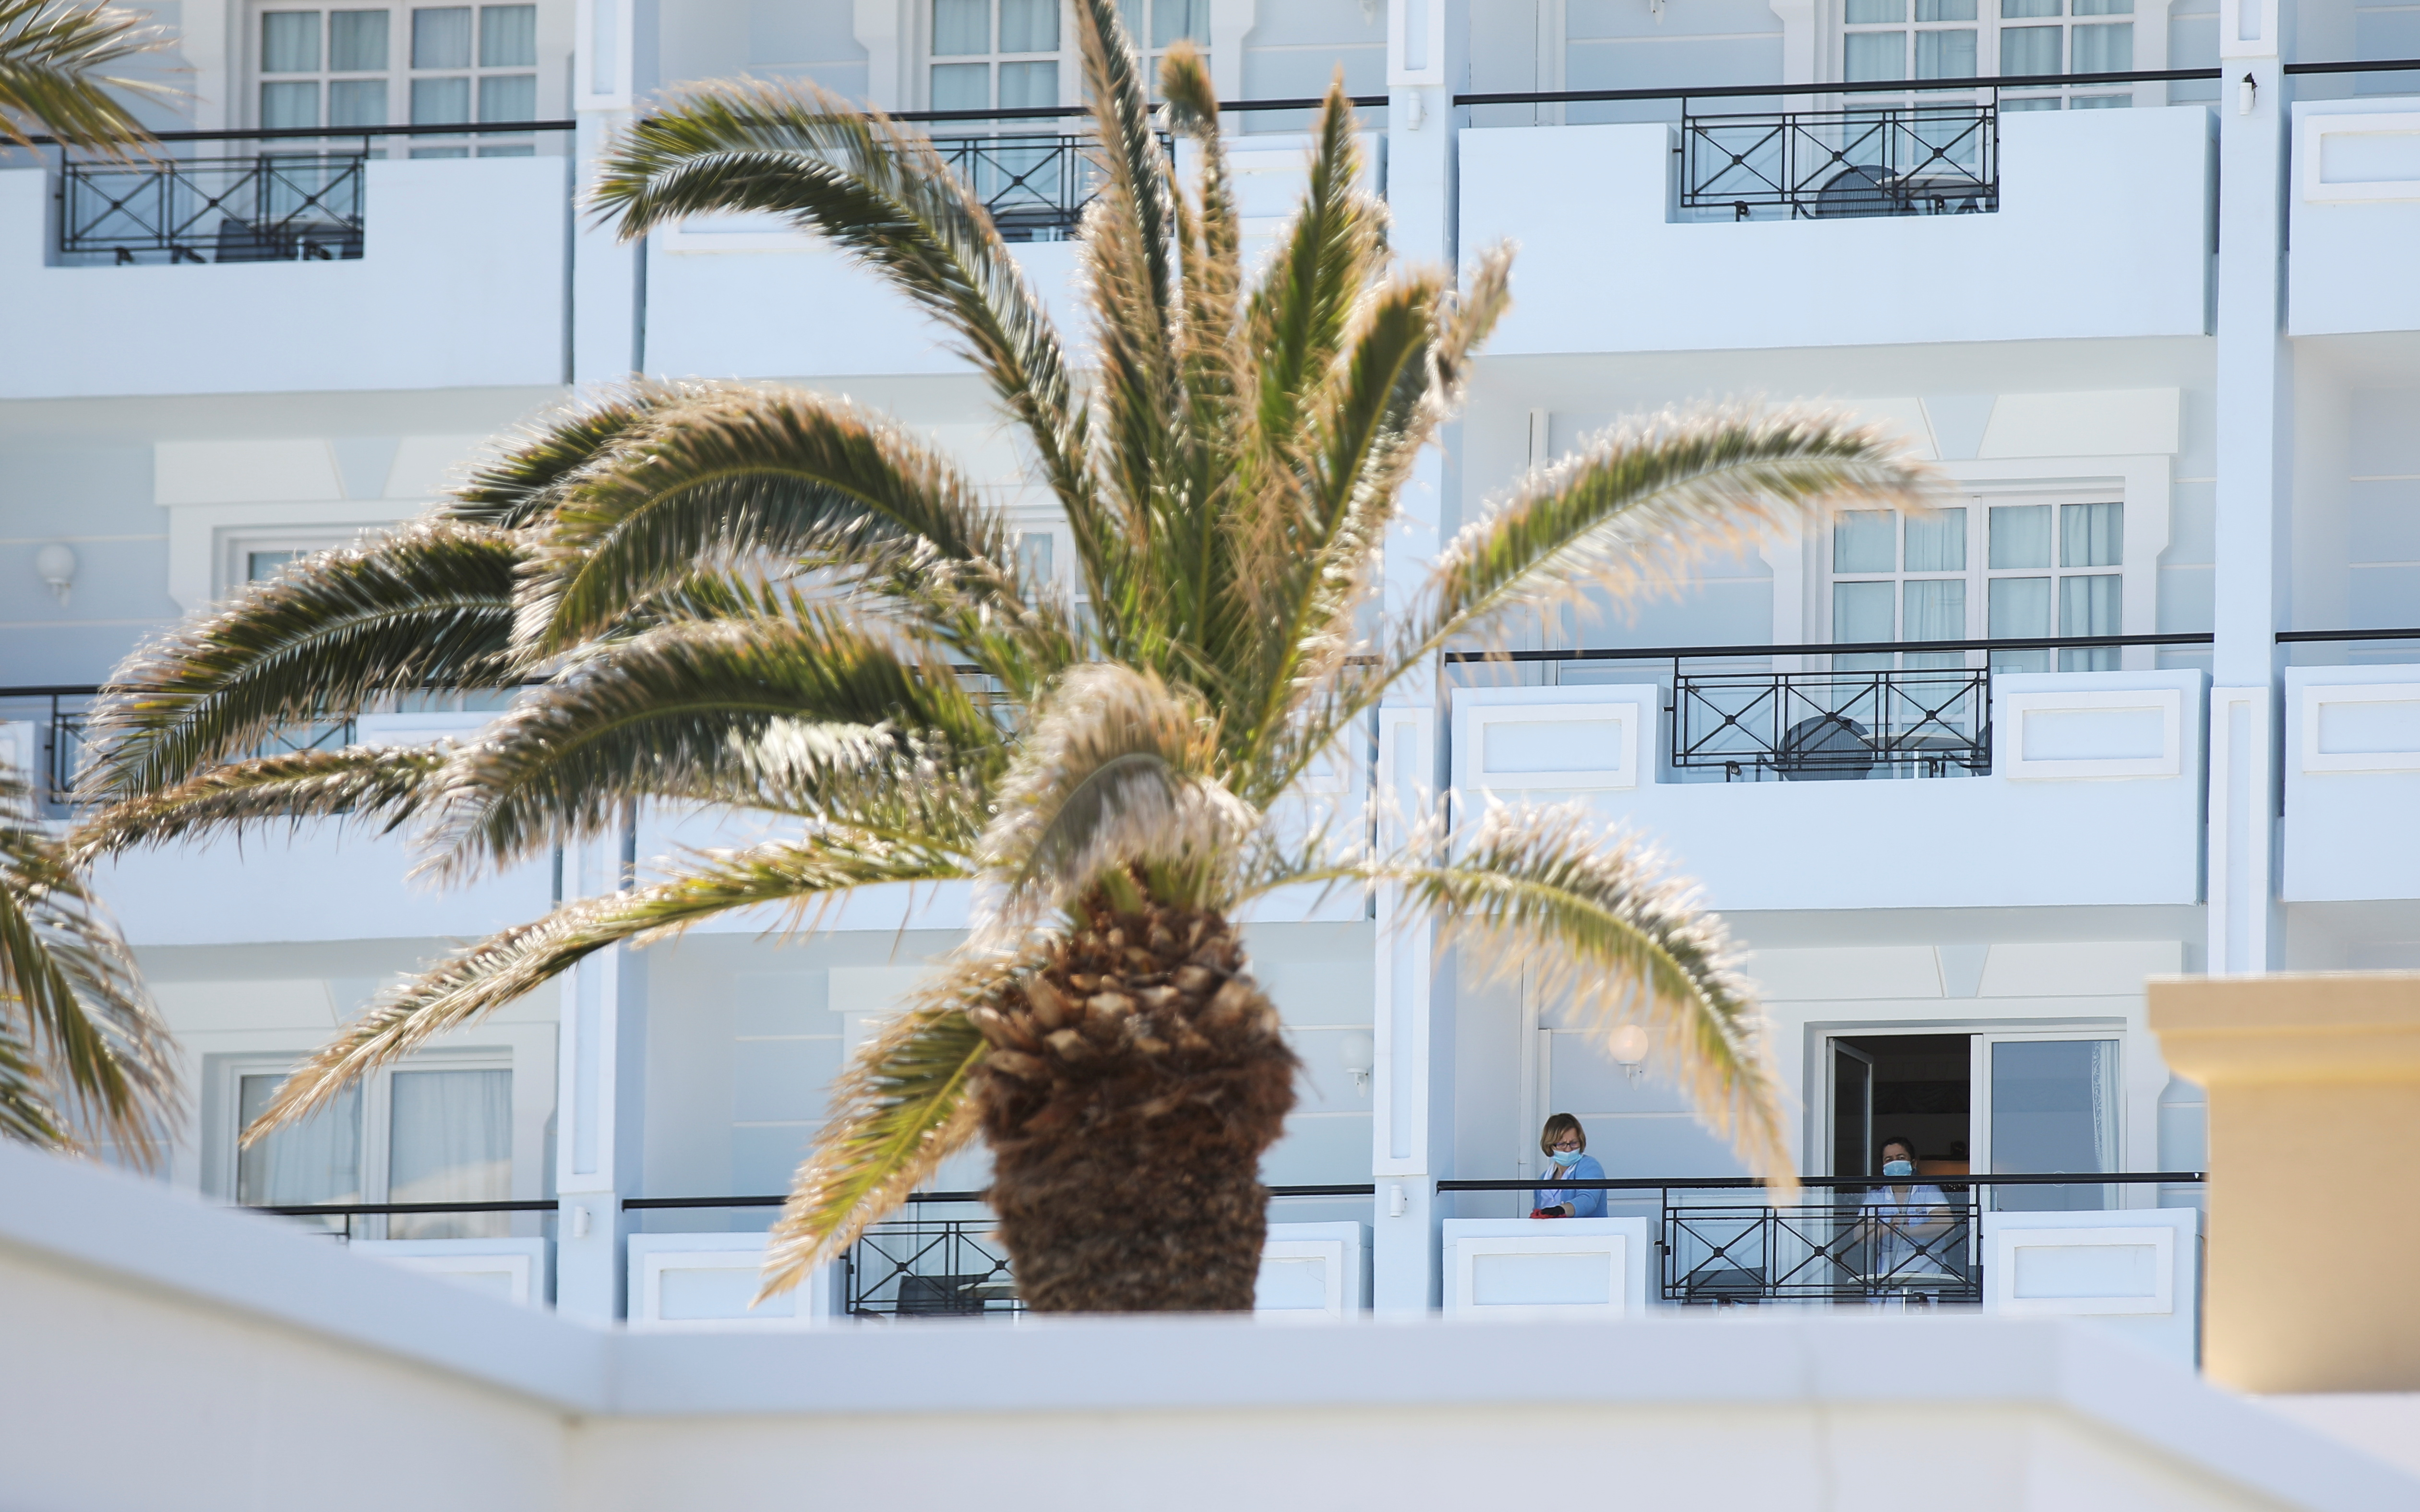 People are seen at a balcony of the Mitsis Grand Hotel Beach amid the coronavirus disease (COVID-19) outbreak in Rhodes on the island of Rhodes, Greece April 12, 2021. REUTERS/Louiza Vradi